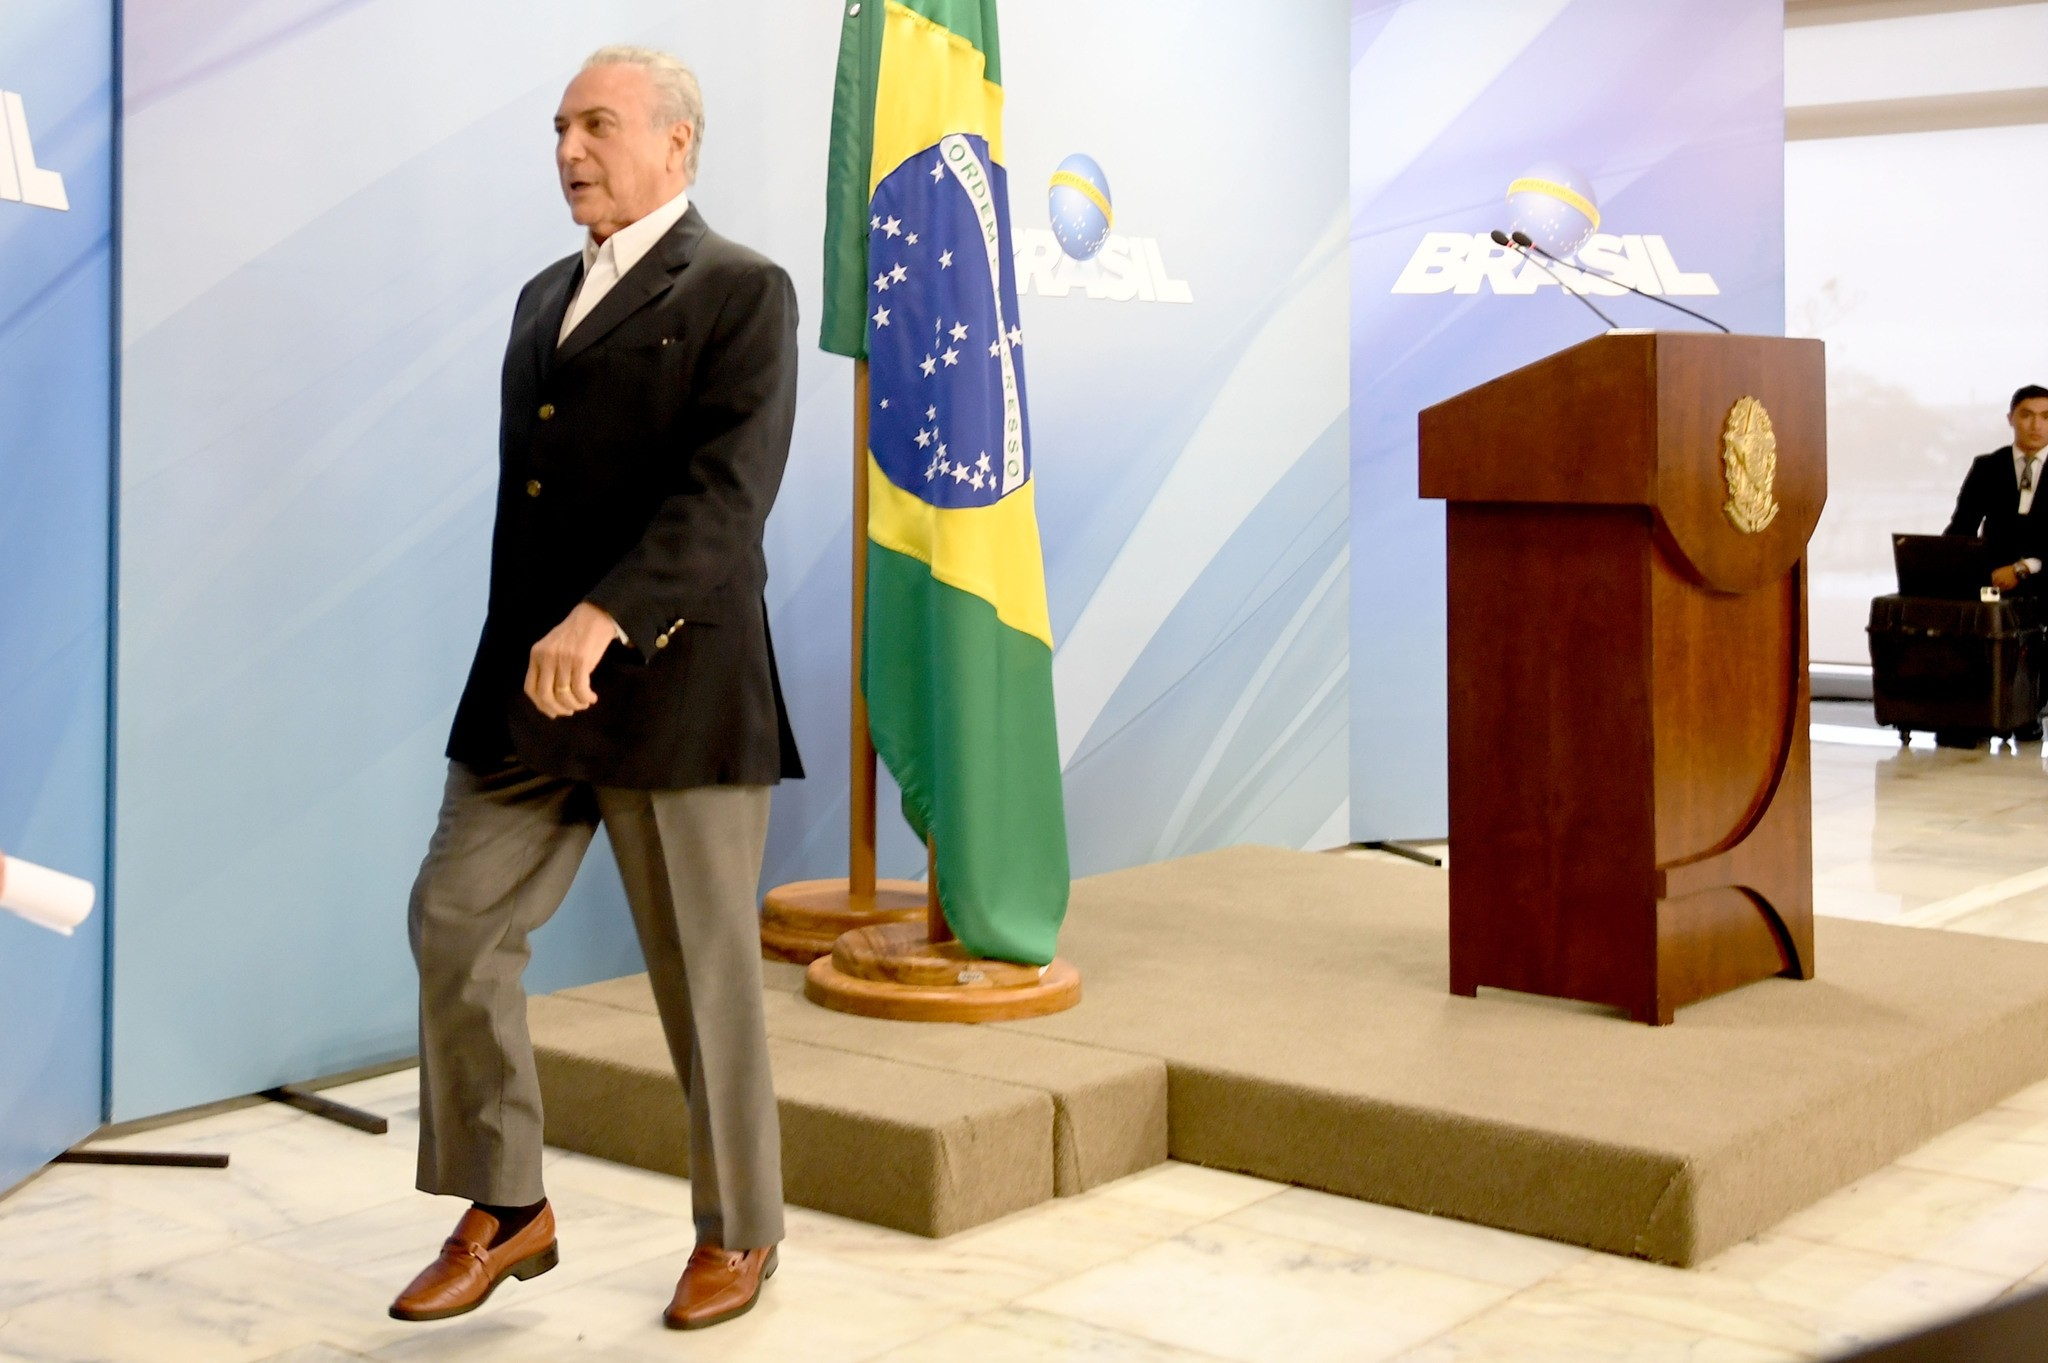 Brazilian President Michel Temer leaves after making a statement at Planalto Palace in Brasilia, Brazil, on May 20, 2017. (AFP Photo)